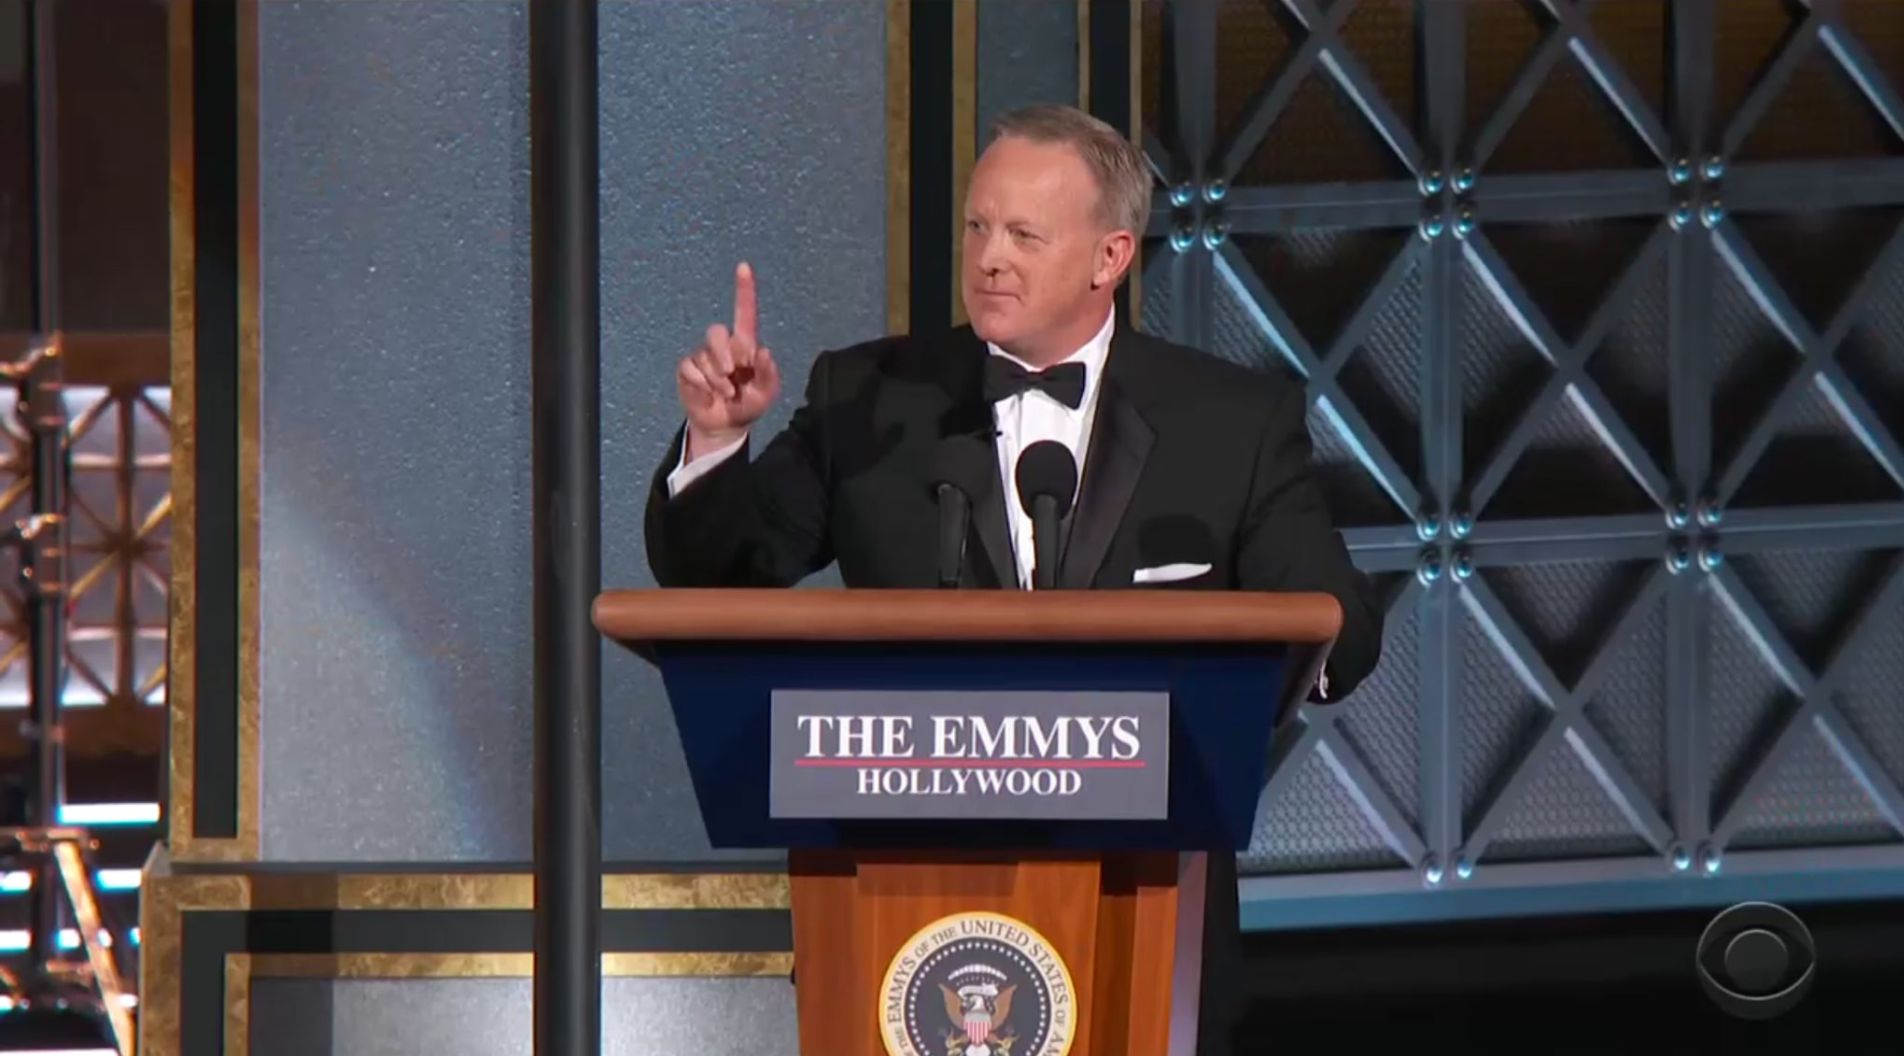 He's Back! Stephen Colbert Brings Out Sean Spicer To Troll Trump At